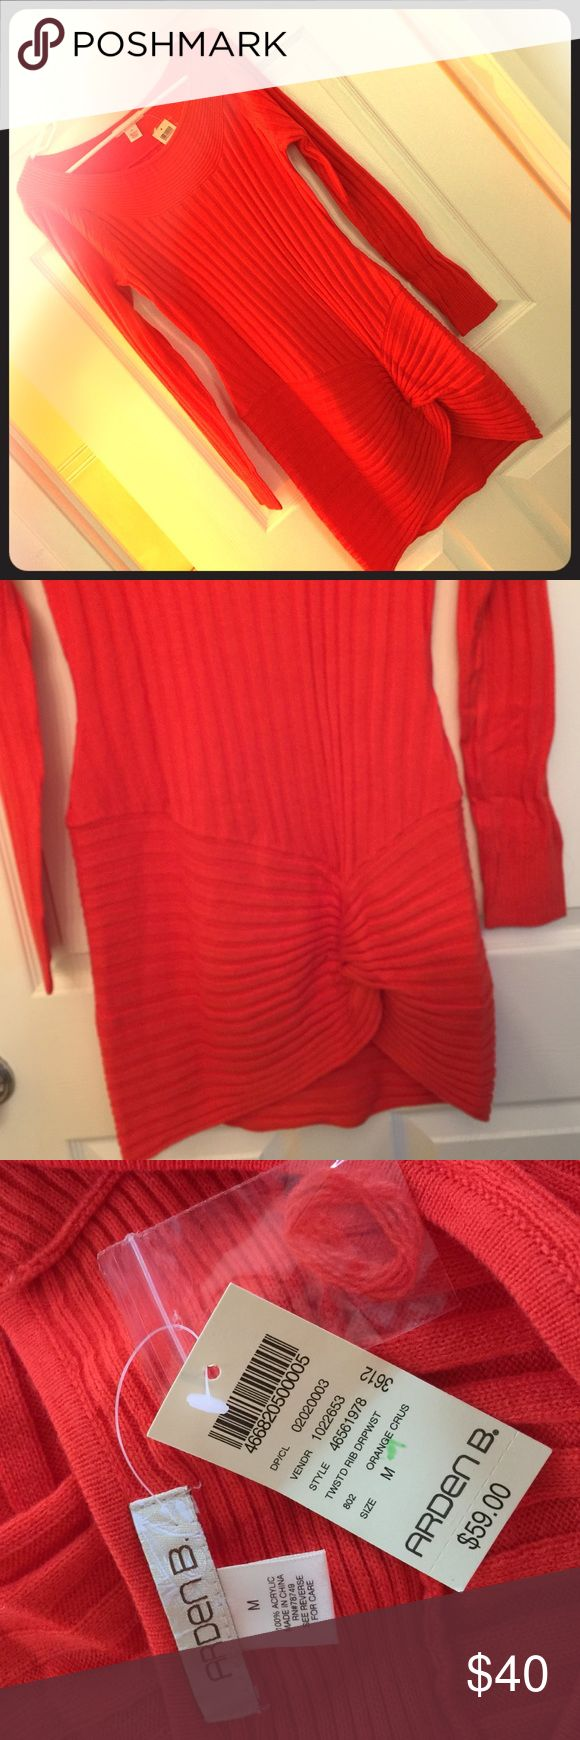 Orange dress Arden B NWT Arden b. Orange dress, medium, cute long sleeve dress for fall 🍂🍁🍃 above the knee length, measured when dress lay flat on surface,  35 inches from shoulder to end of dress. Arden B Dresses